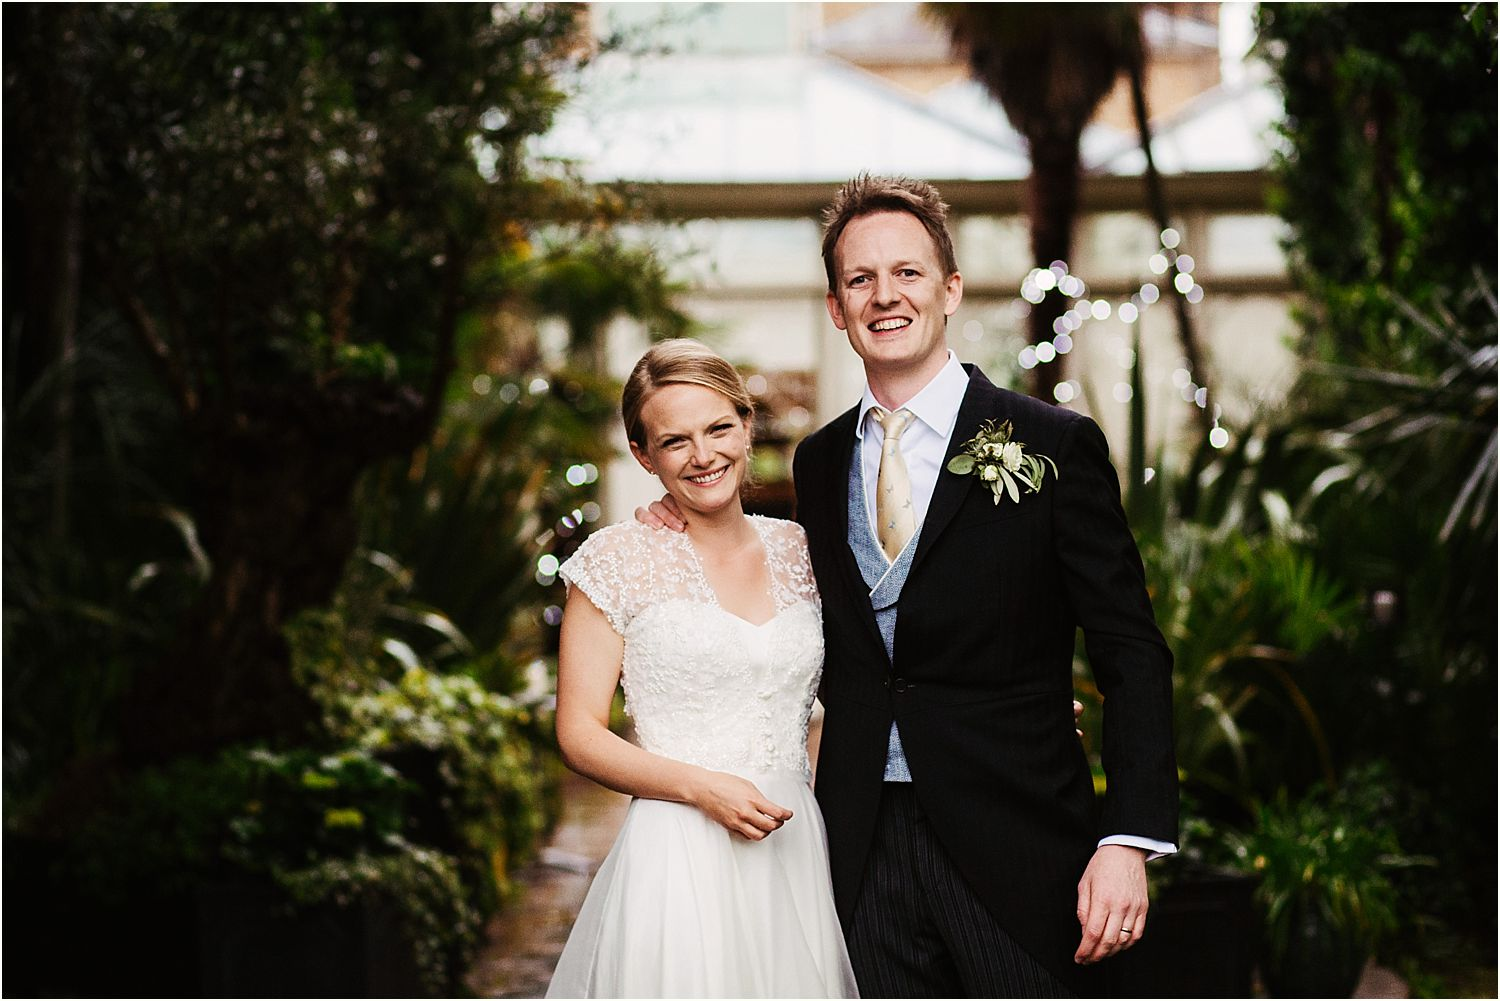 Bride and groom together in gardens at Hampton Court House wedding, Surrey